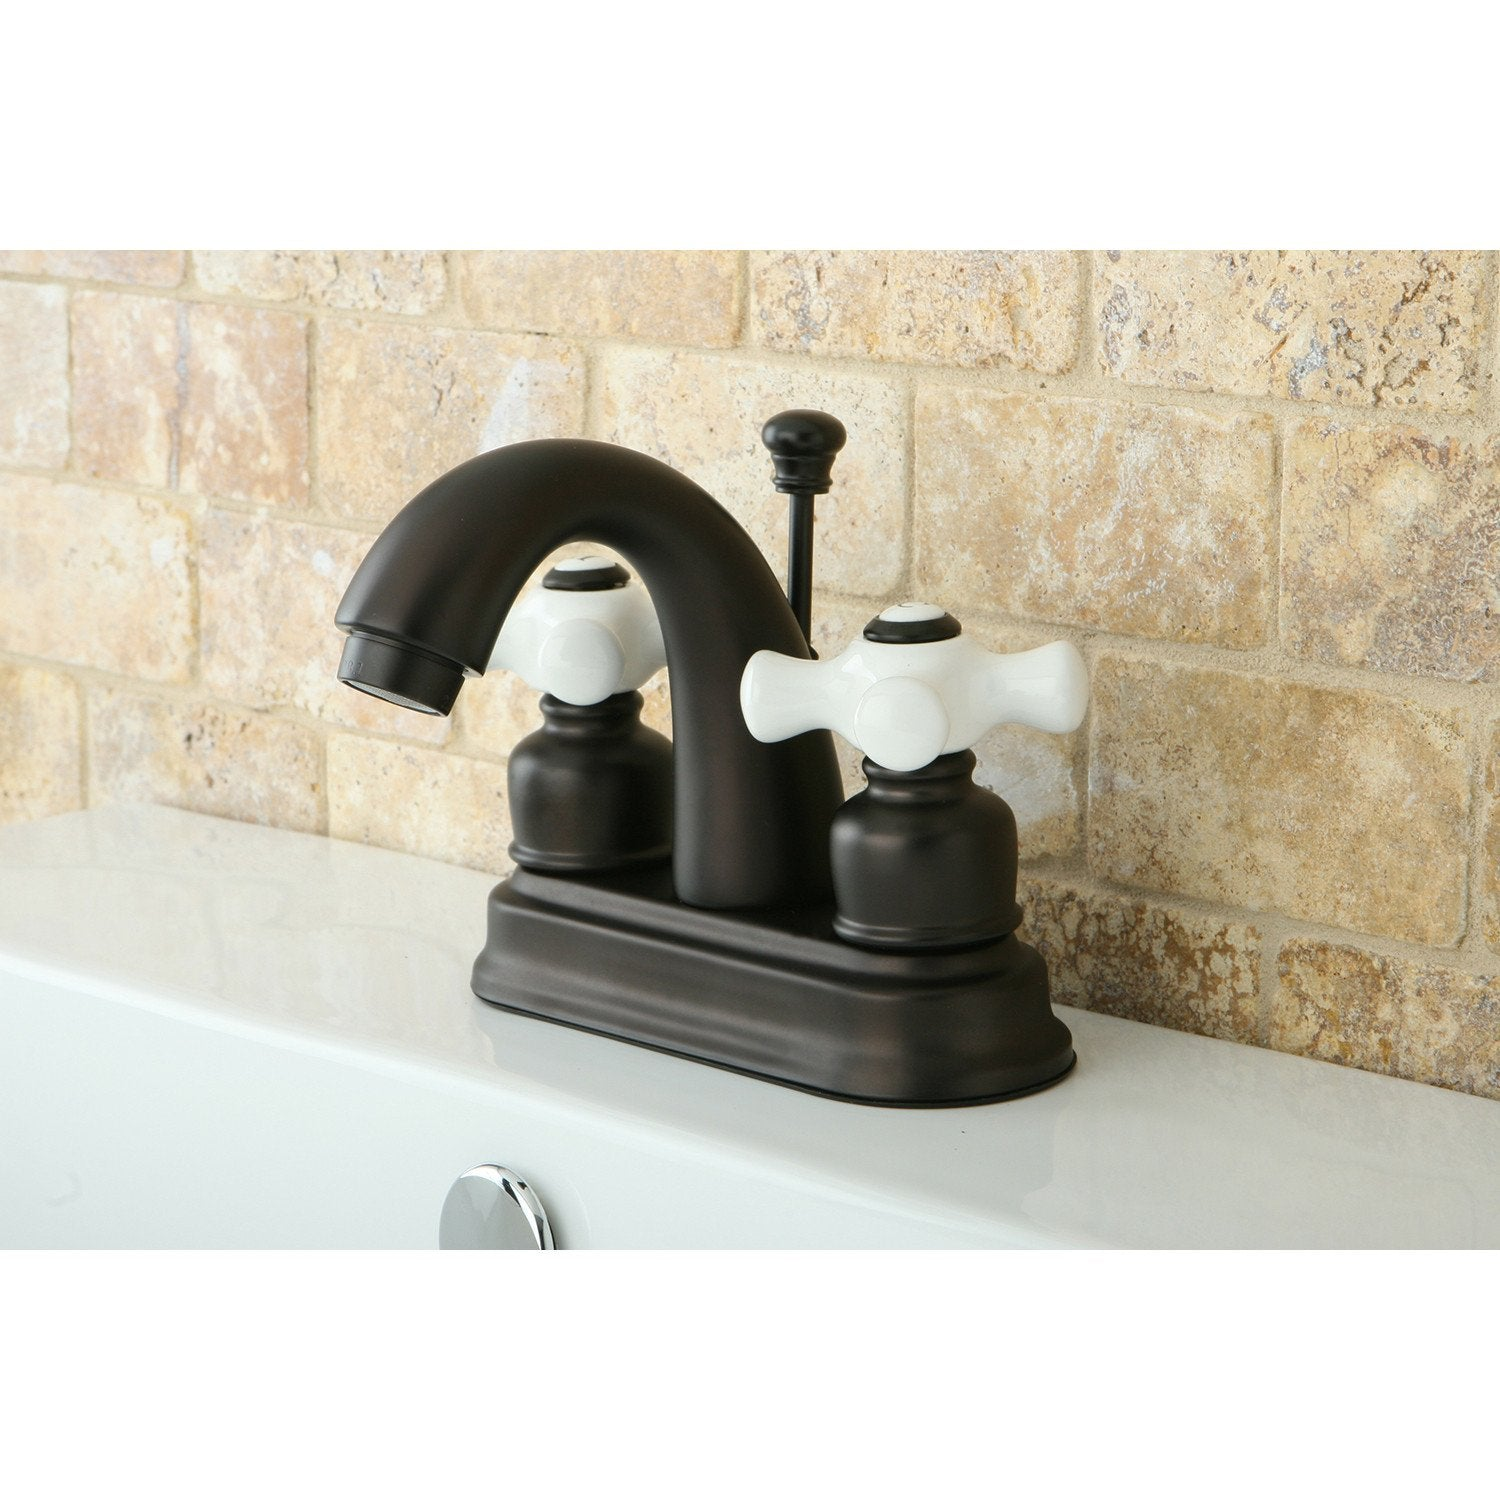 "Kingston Oil Rubbed Bronze 2 Handle 4"" Centerset Bathroom Faucet KB5615PX"